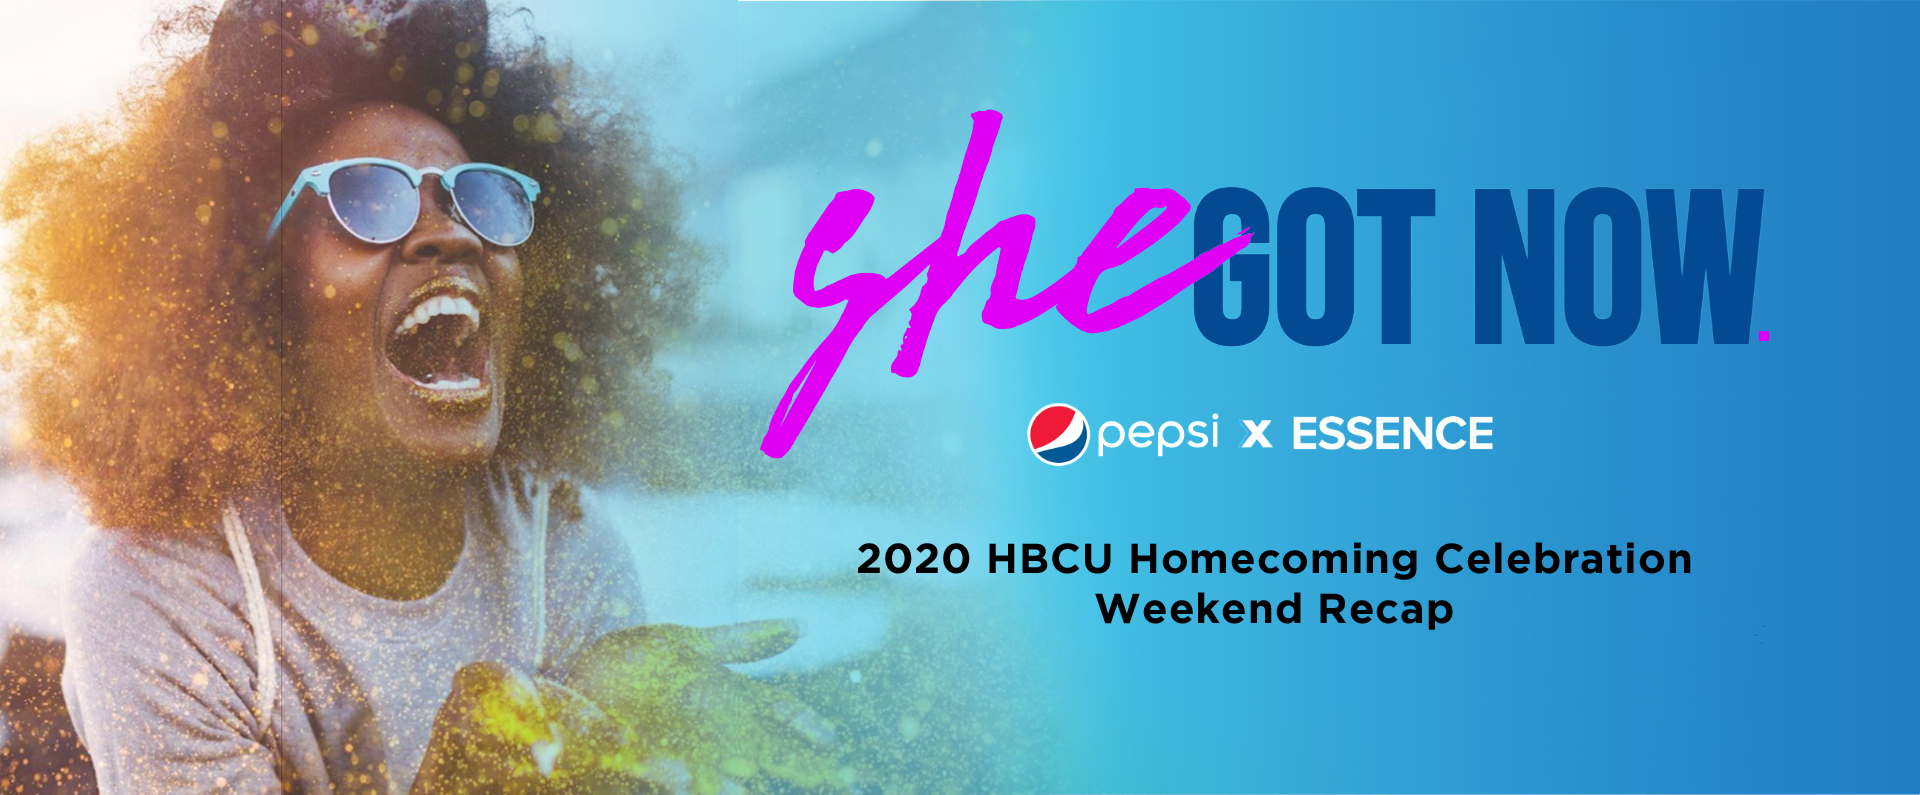 Pepsi x Essence's She Got Now: A 2020 Virtual HBCU Homecoming